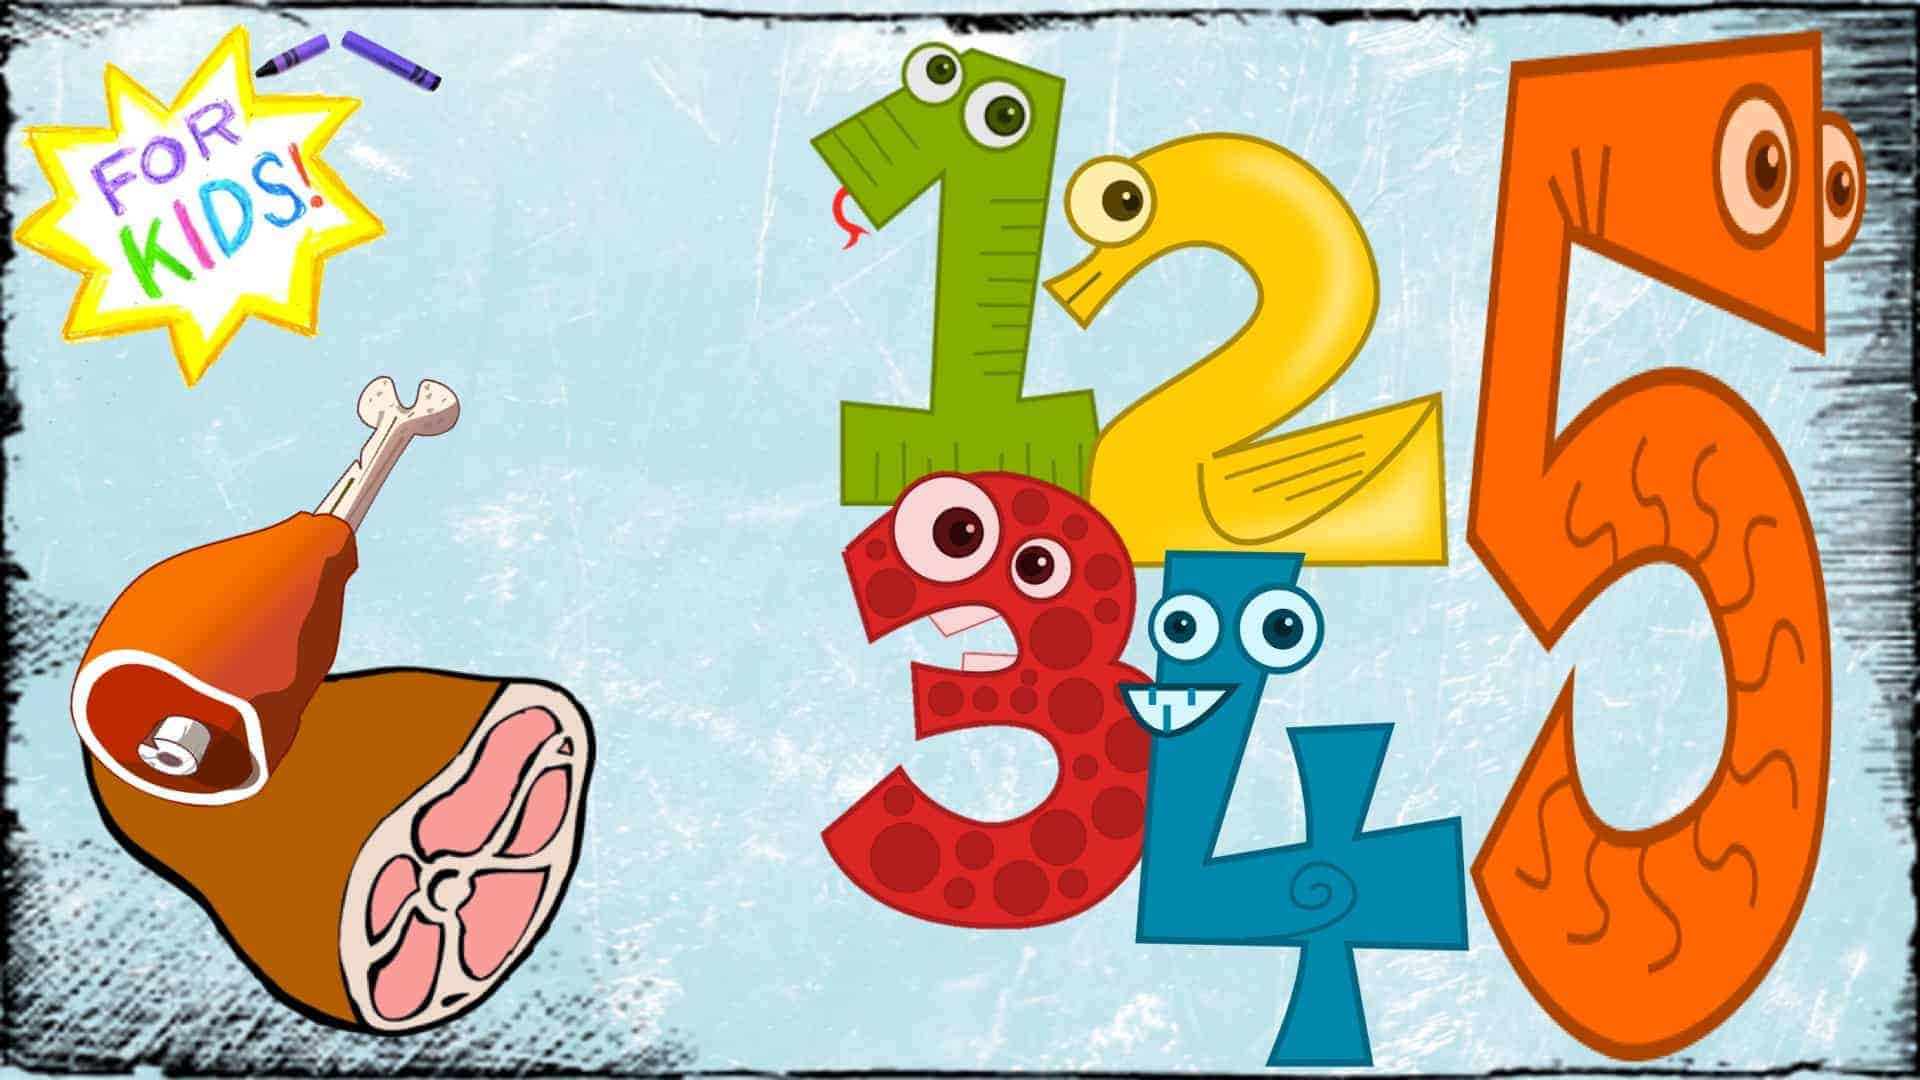 """A white and yellow star is shown in the top left-hand corner. The appearance is one rendered in crayon. Across the center of the star are the words """"For Kids"""". Below the star are two cartoon """"meat"""" cuts. On the right, in bright colors are the numbers one to five in cartoon form."""